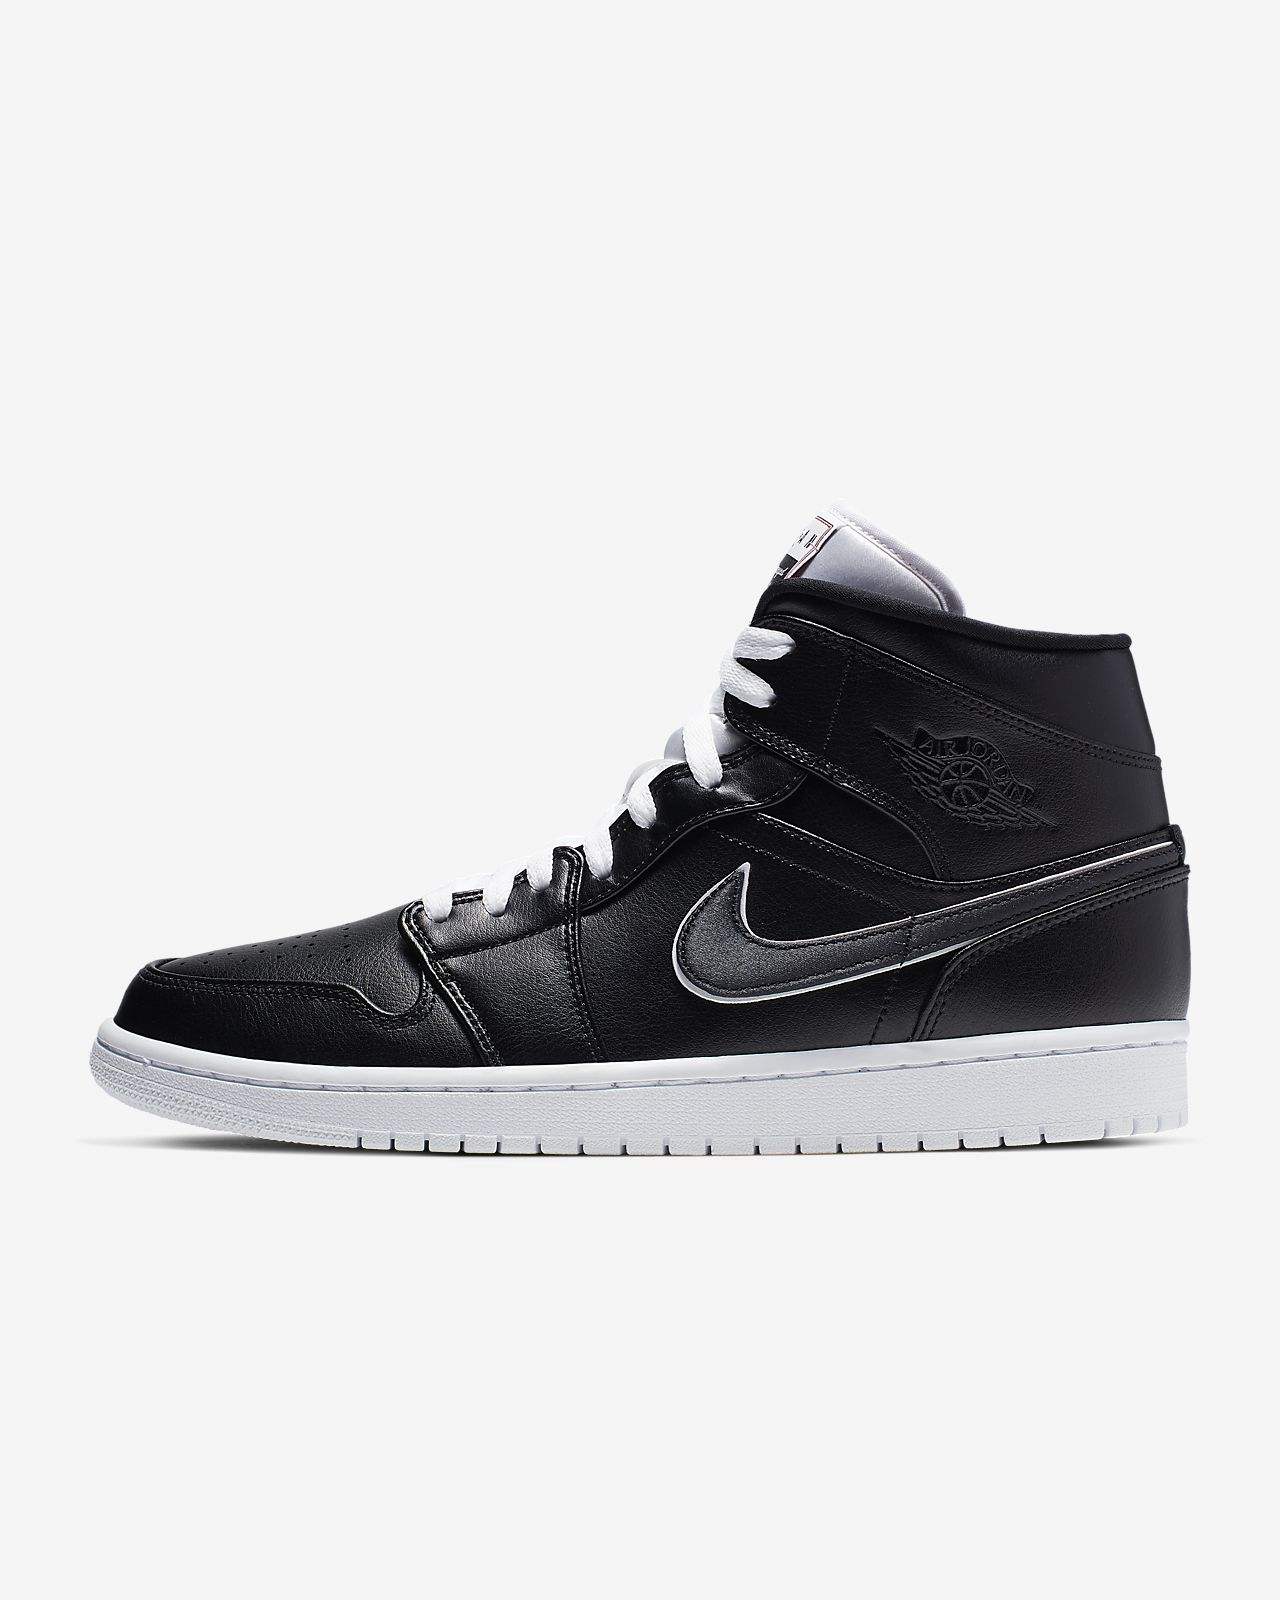 07aba8d9afb6 Air Jordan 1 Mid SE Men s Shoe. Nike.com